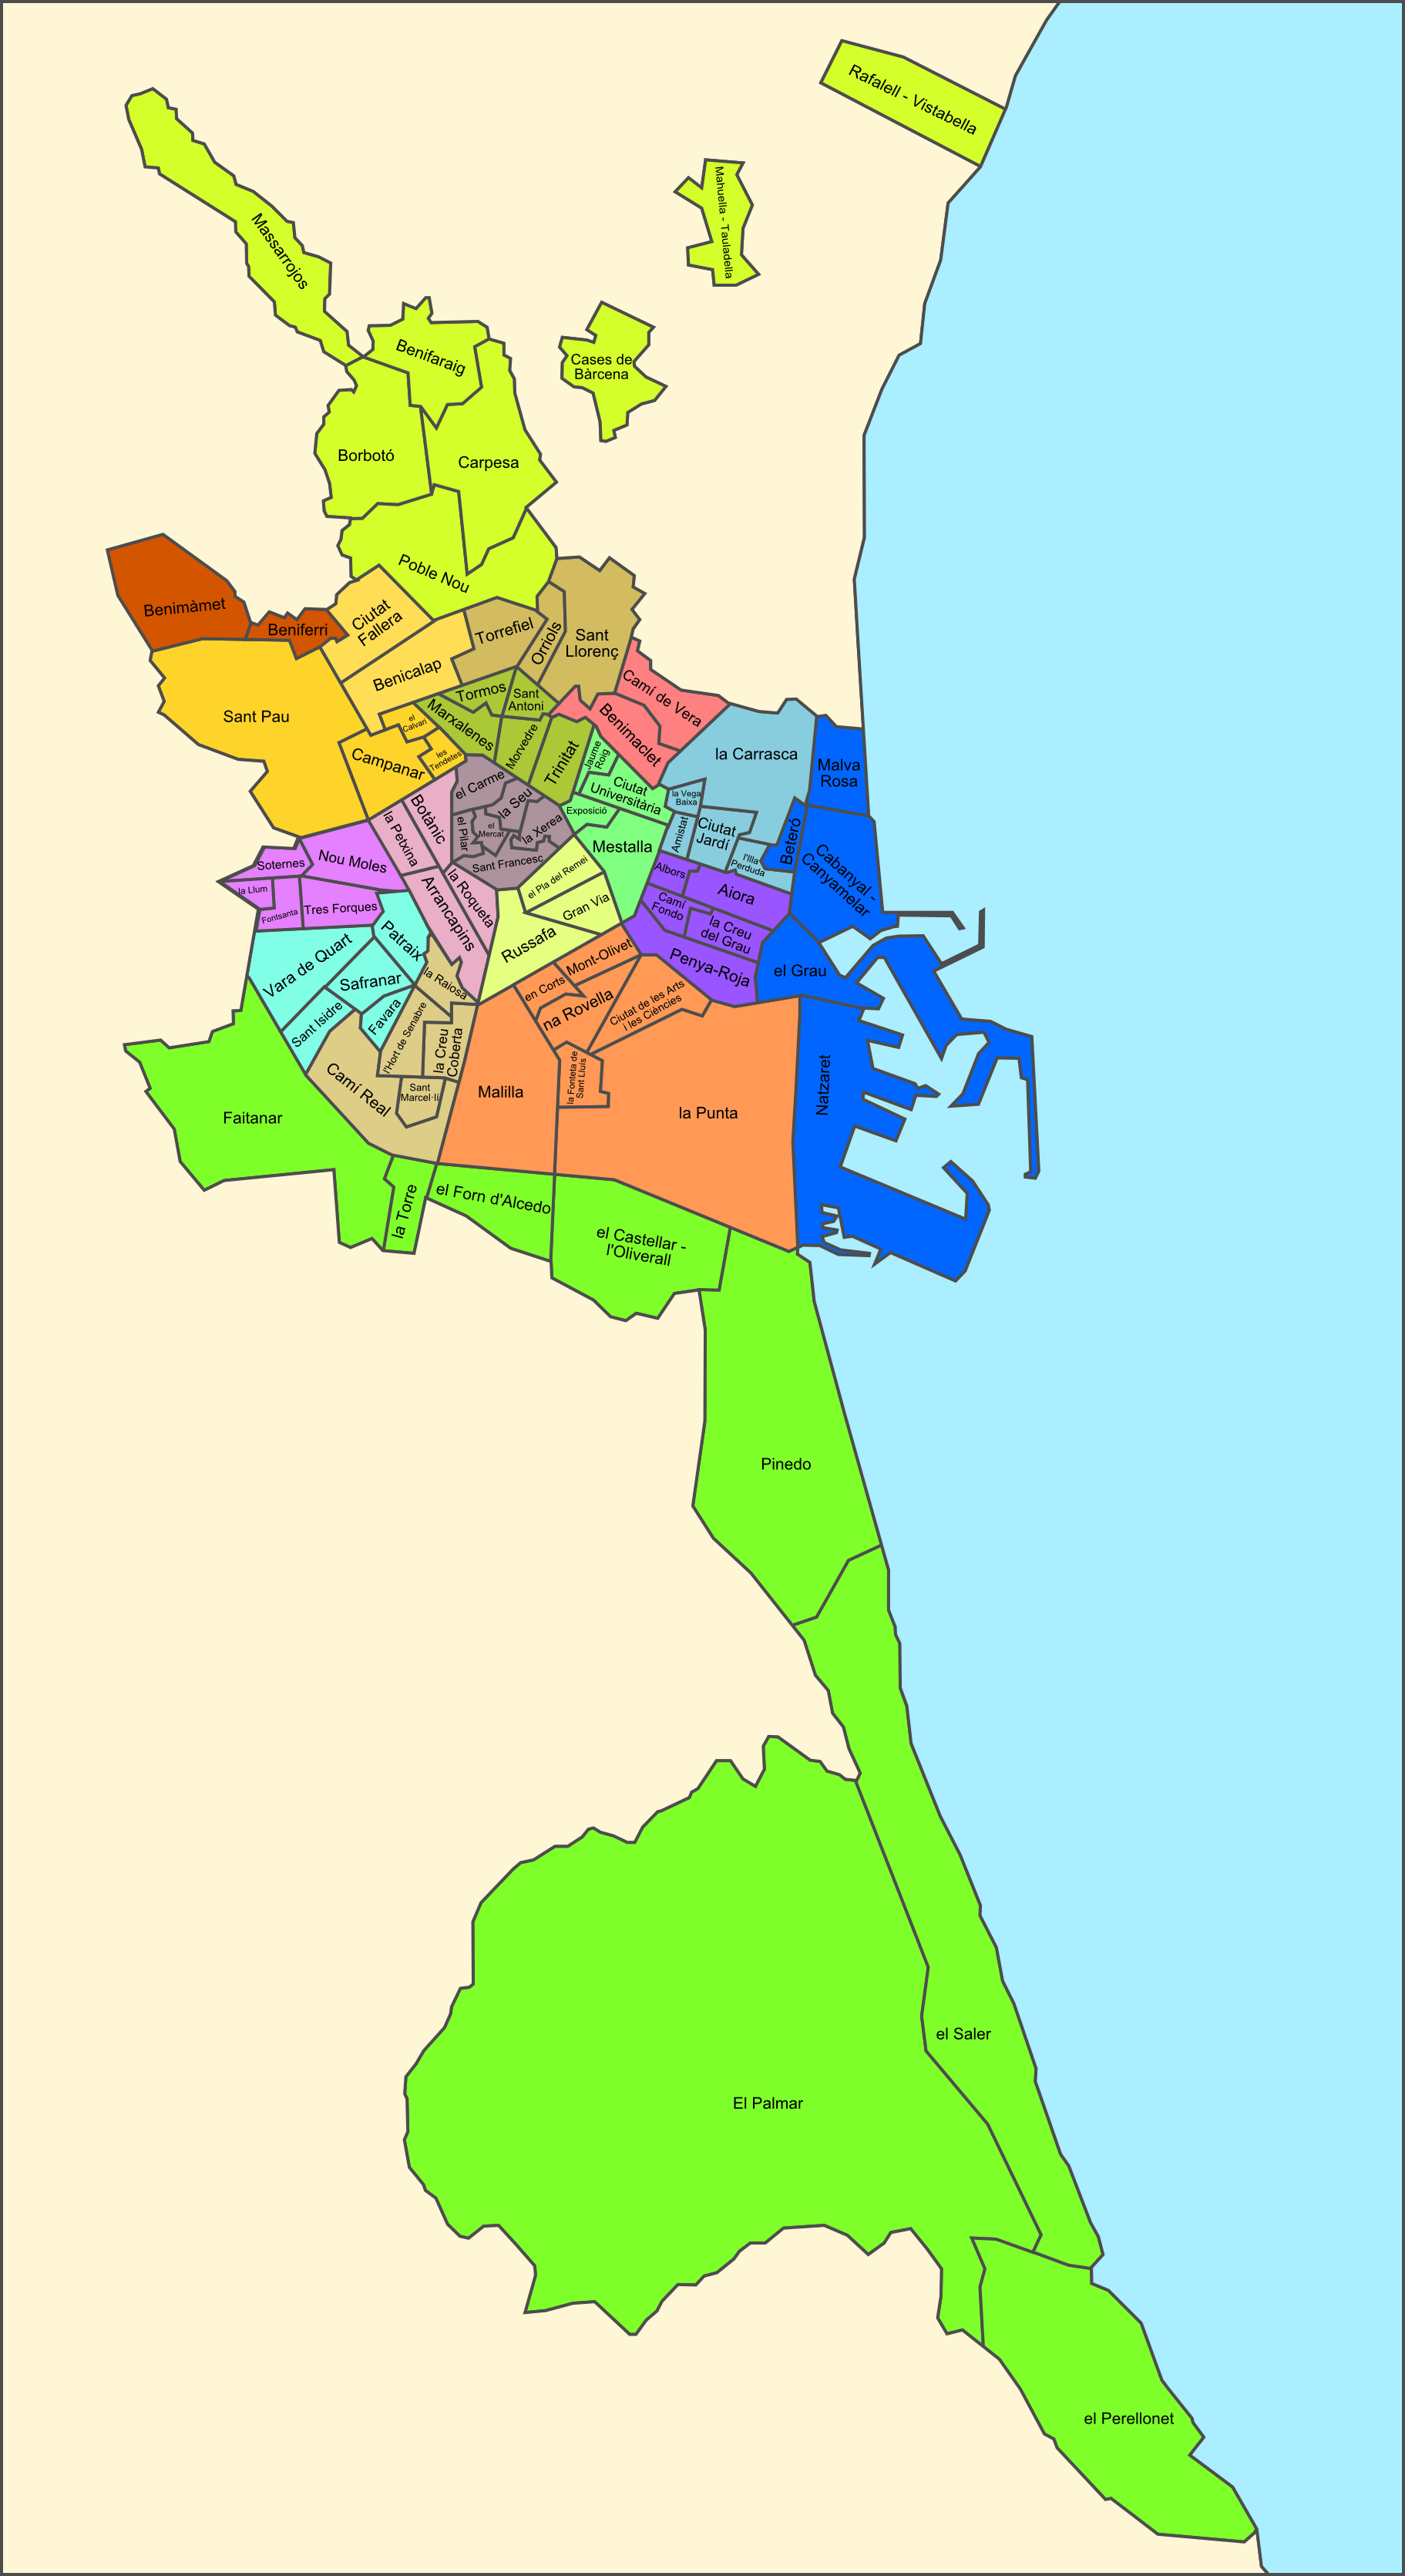 Neighborhoods of Valencia 2010